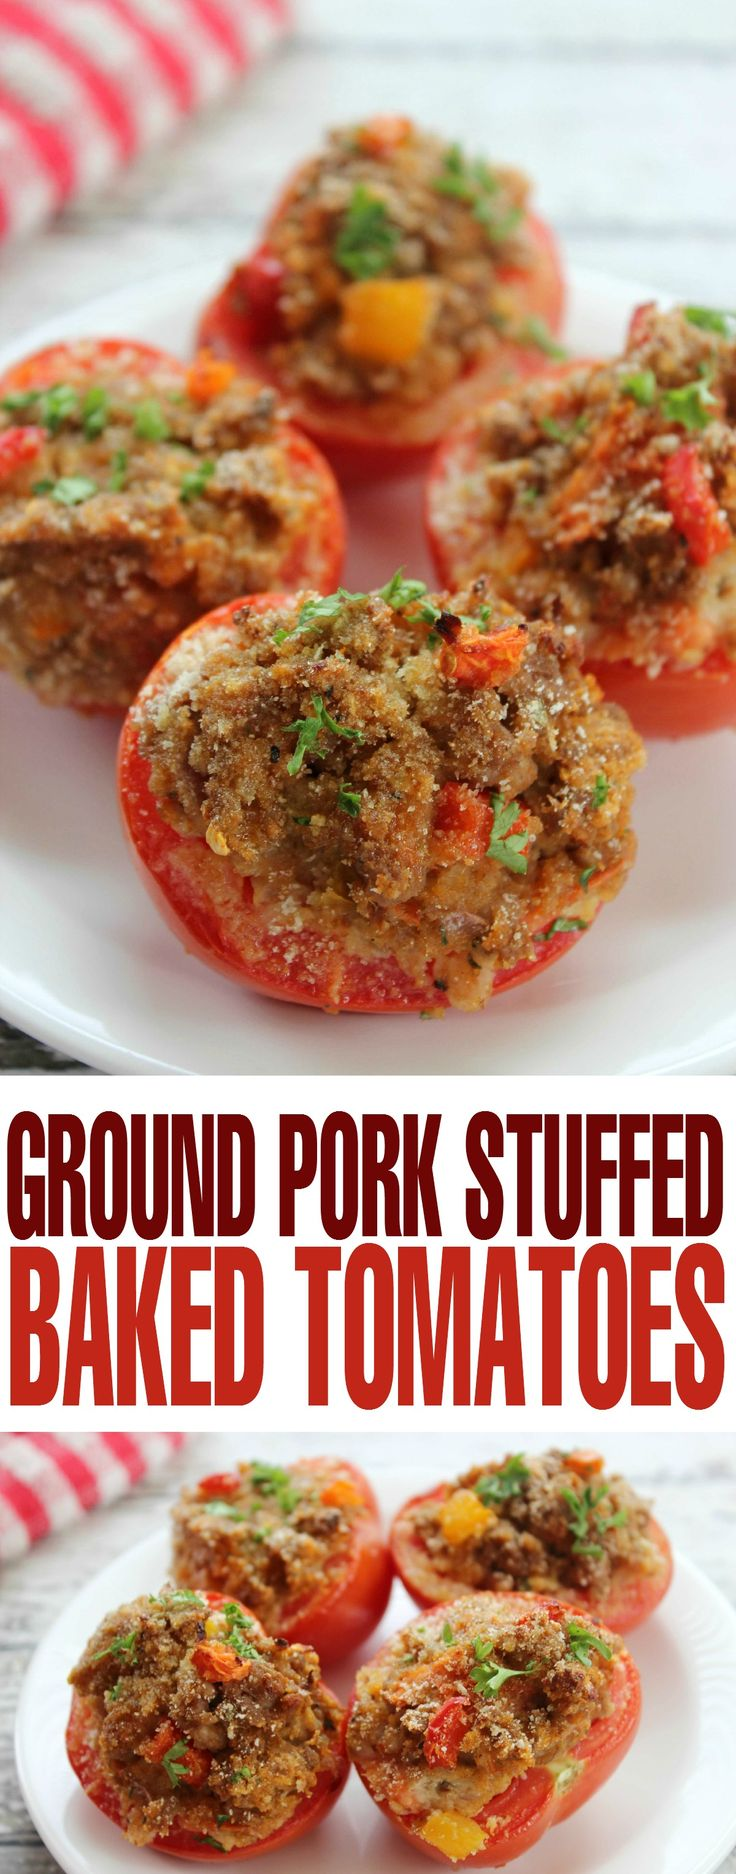 This Ground Pork Stuffed Baked Tomatoes recipe is a healthy meal option to serve your family for dinner.